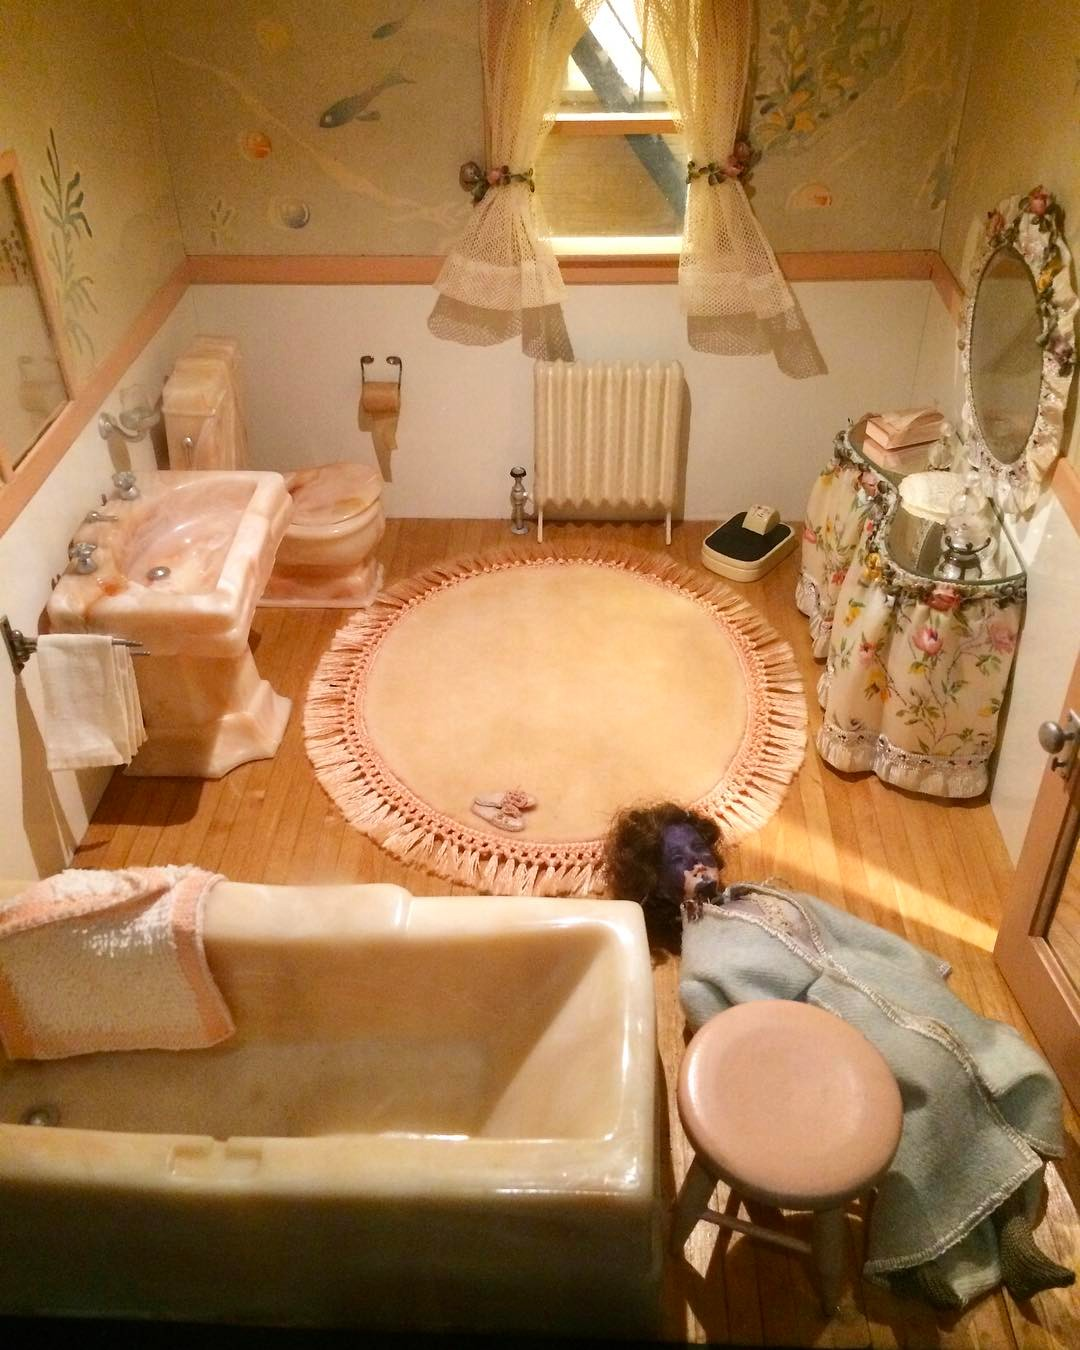 The Pink Bathroom 🏠 Frances Glassner Lee and the Nutshell Studies of Unexplained Death 📷 @dykhuis 📹 Check IG stories for more 🔪